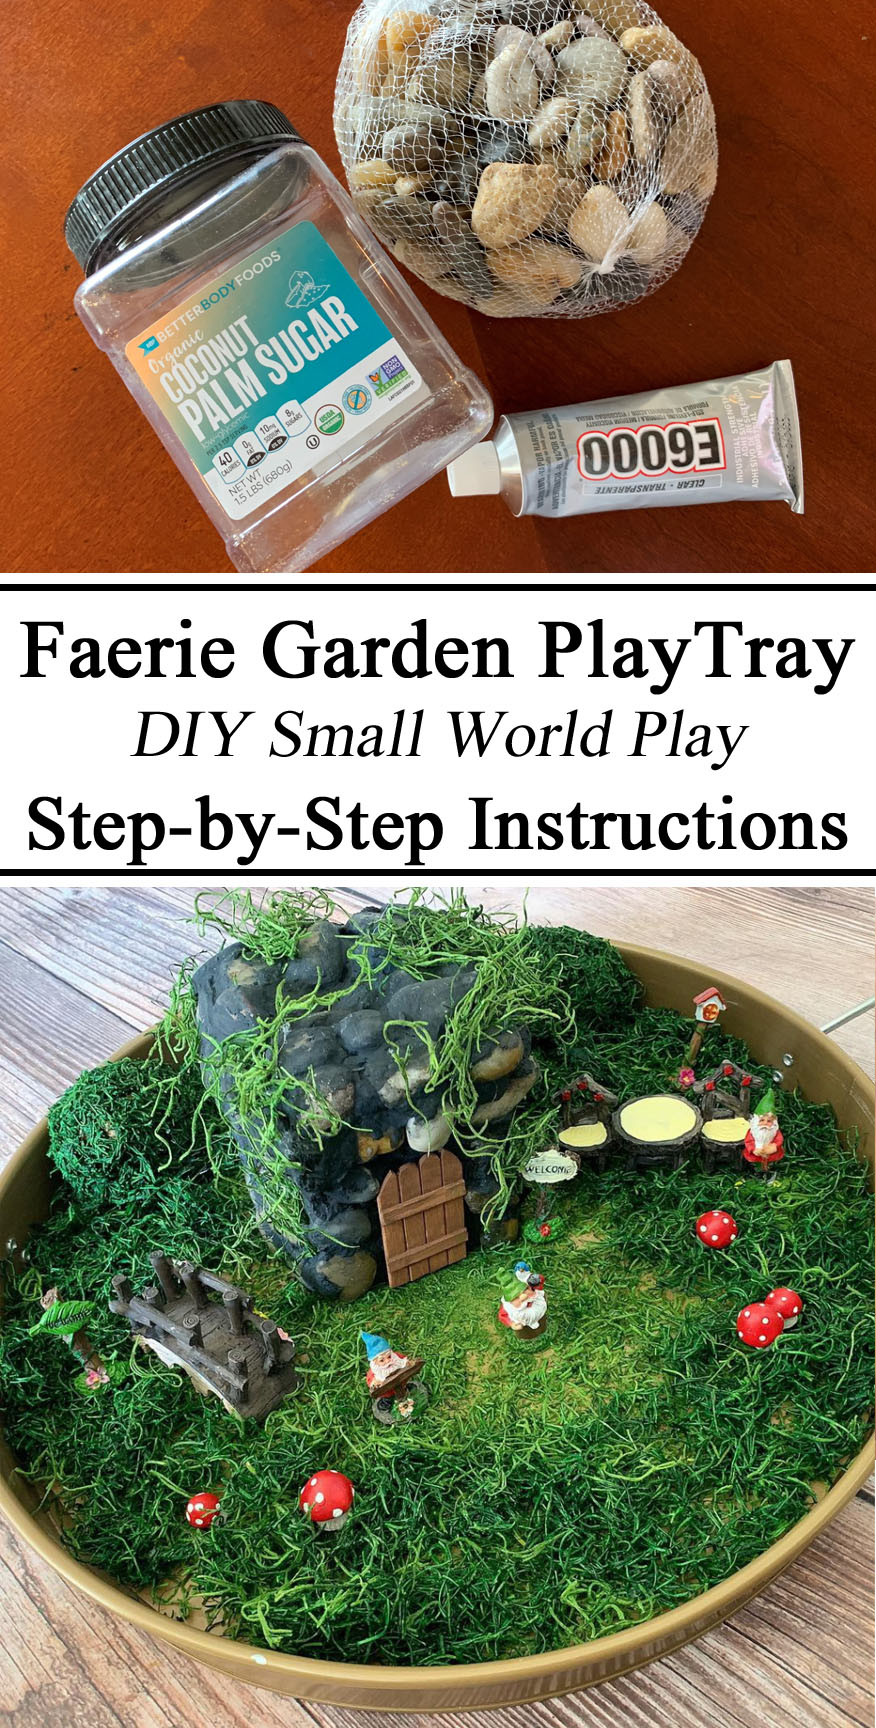 Fairy Garden Faerie Play Tray Small World, DIY, Instructions, Rock Garden Gnomes Leprachauns, Upcycle, Play Based Learning, Invitation to Play, Creative Mom, Spanish Moss, Unschooling, Activity Kids, Preschool, Kindergarten, Dollar Store Tree,